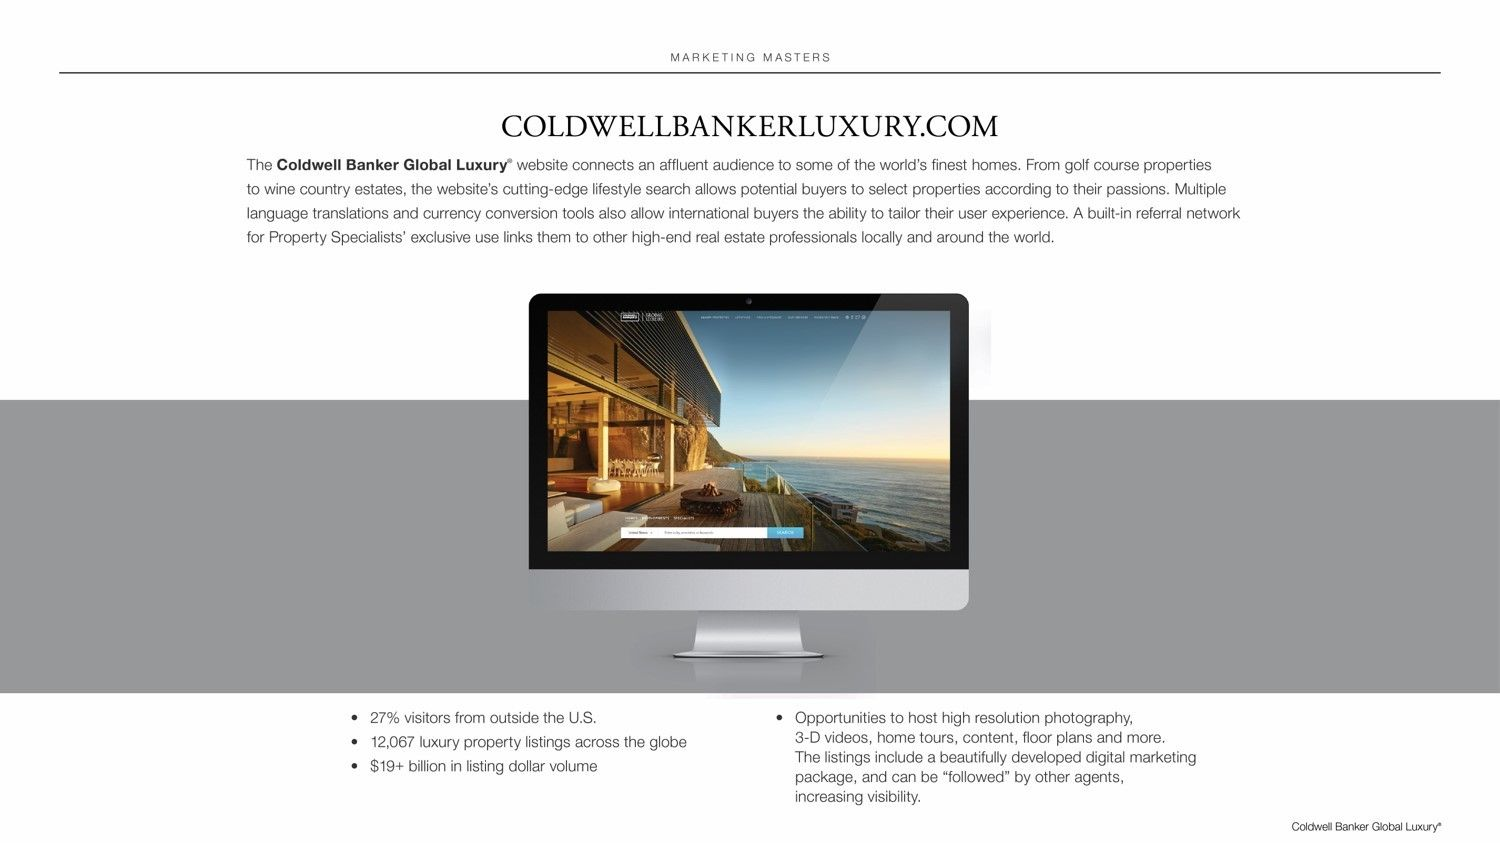 coldwell-banker-global-luxury-website